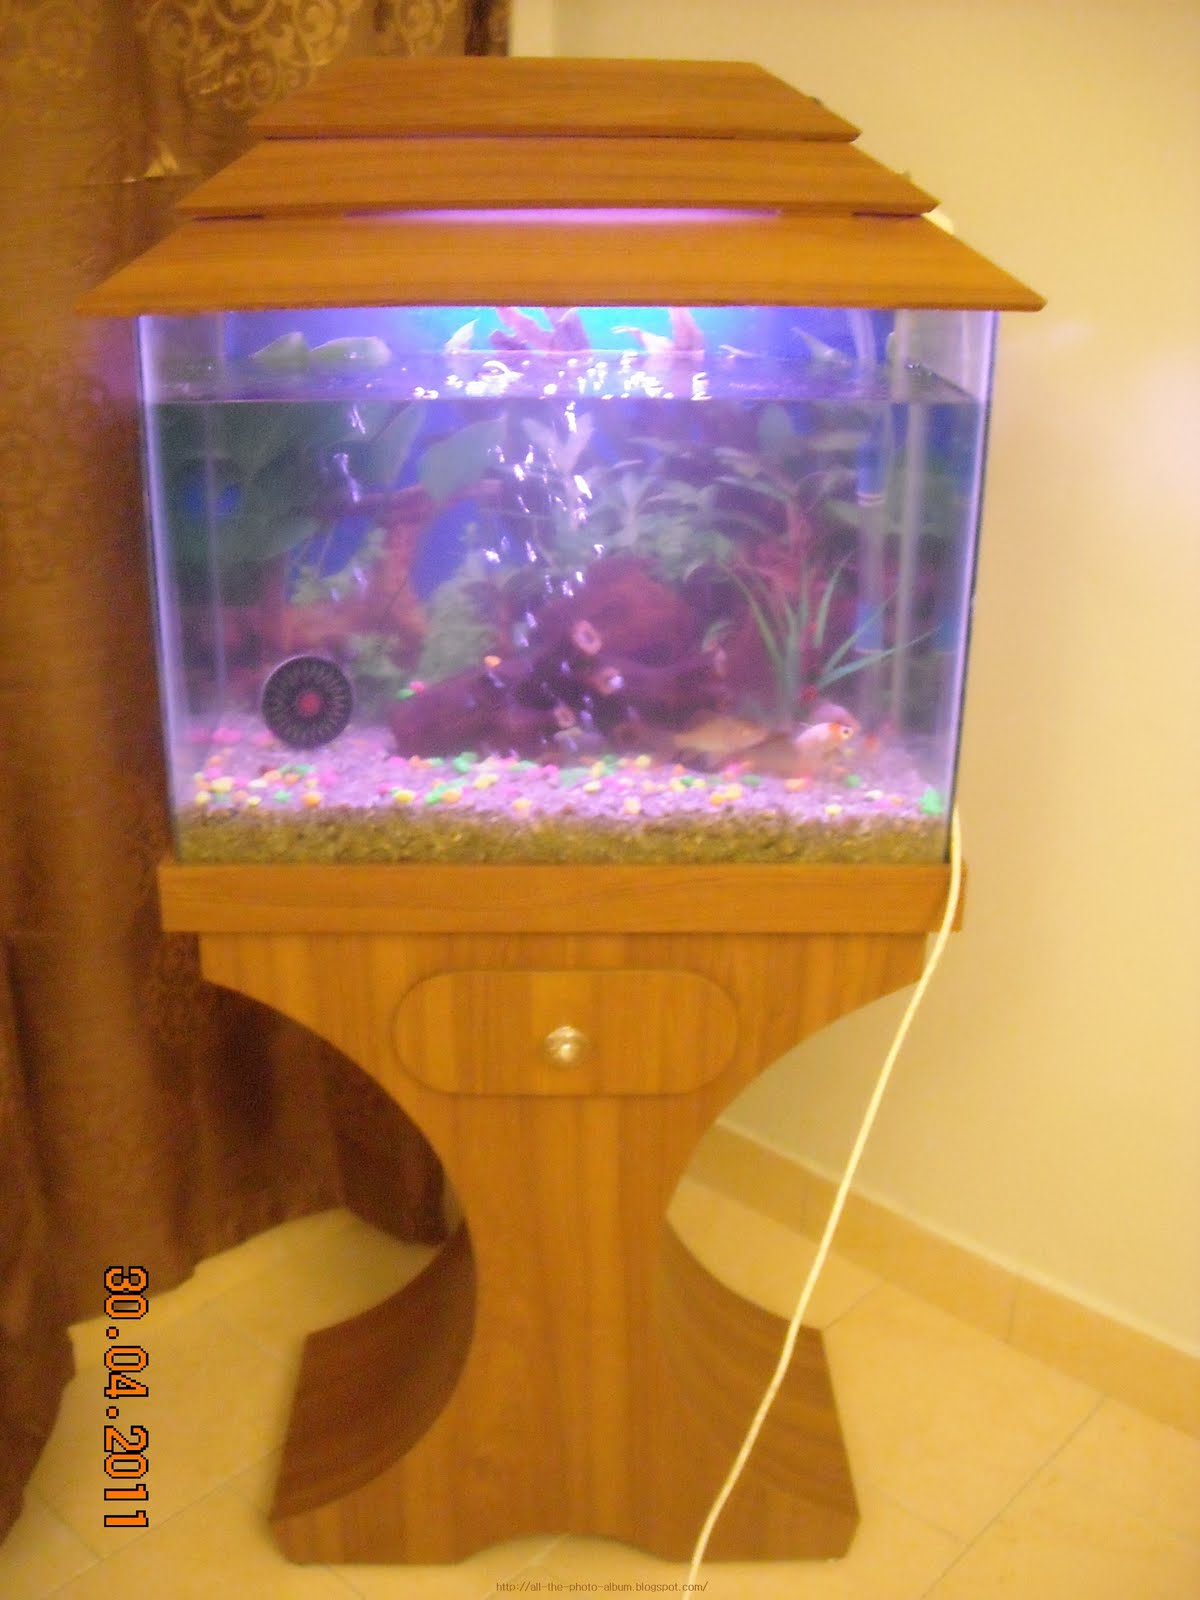 Fish aquarium karachi - Fish Aquarium Full View With Glass Tank And Brown Wooden Top And Bottom Frame